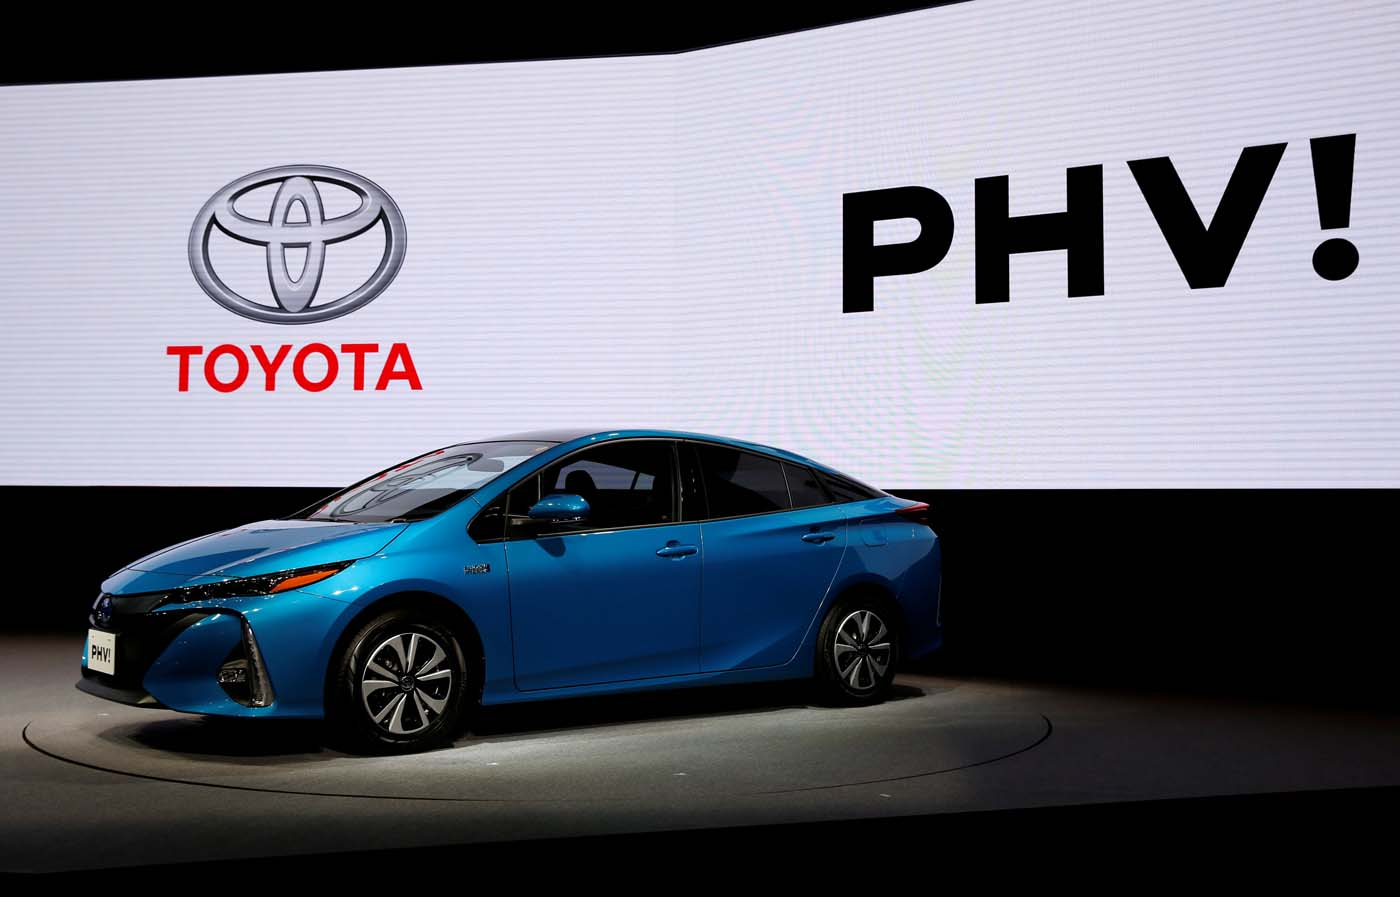 Toyota Motor Corp. displays the company's Prius PHV Plug-in-Hybrid vehicle, also known as Prius Prime in the U.S., during an event to mark the launch of the car in Japan, in Tokyo, Japan February 15, 2017. REUTERS/Issei Kato